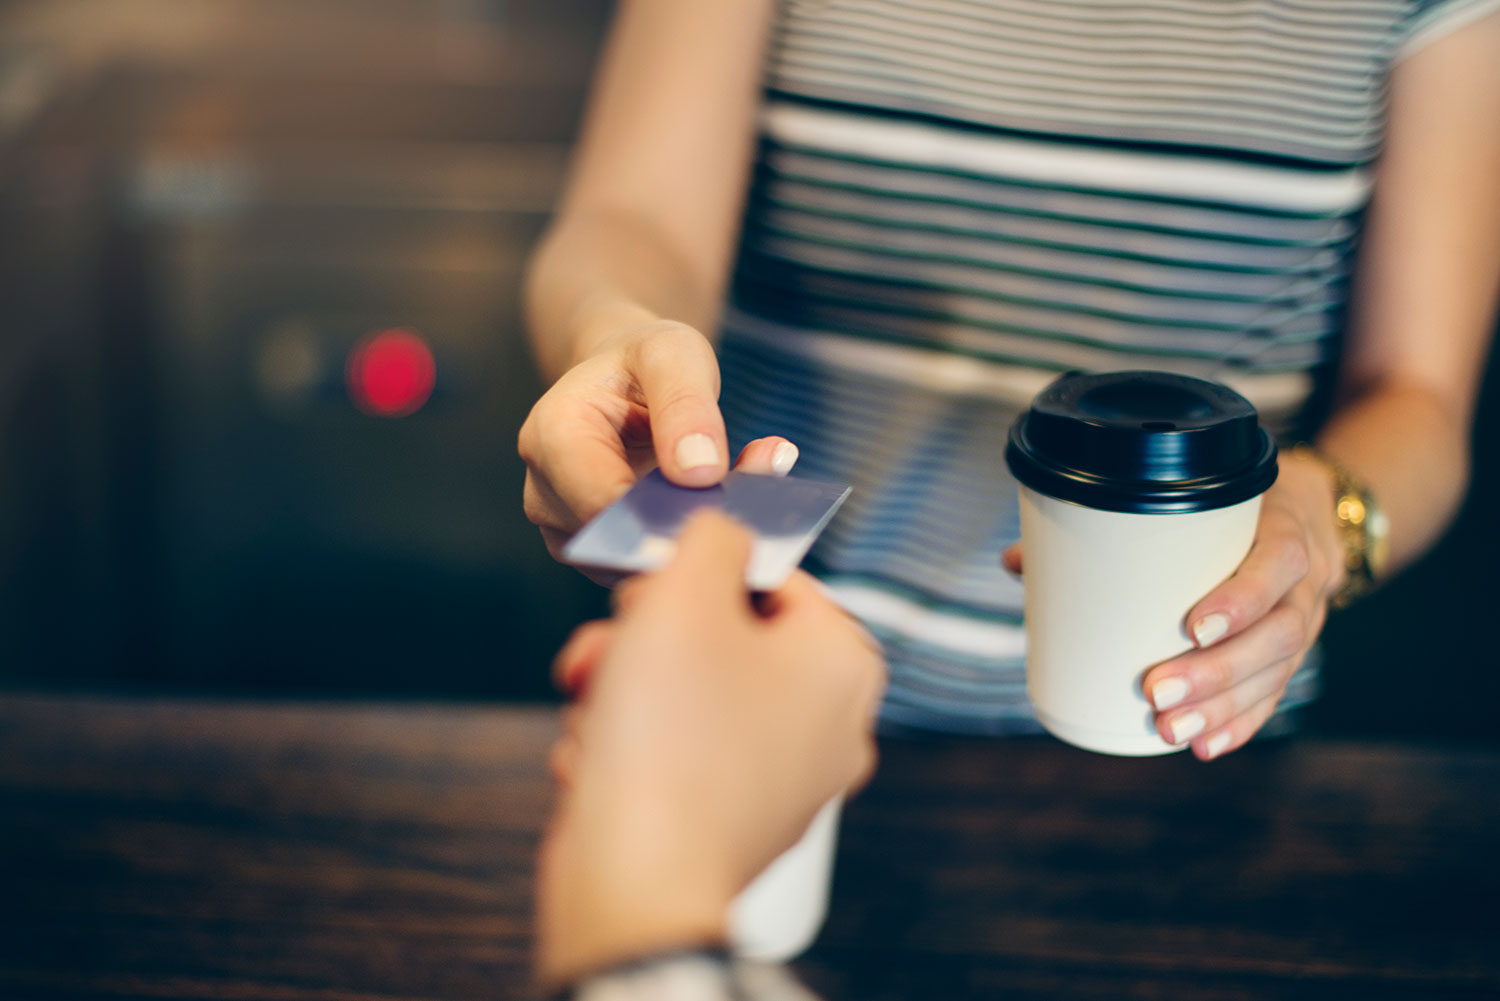 Photo of person buying coffee with debit card